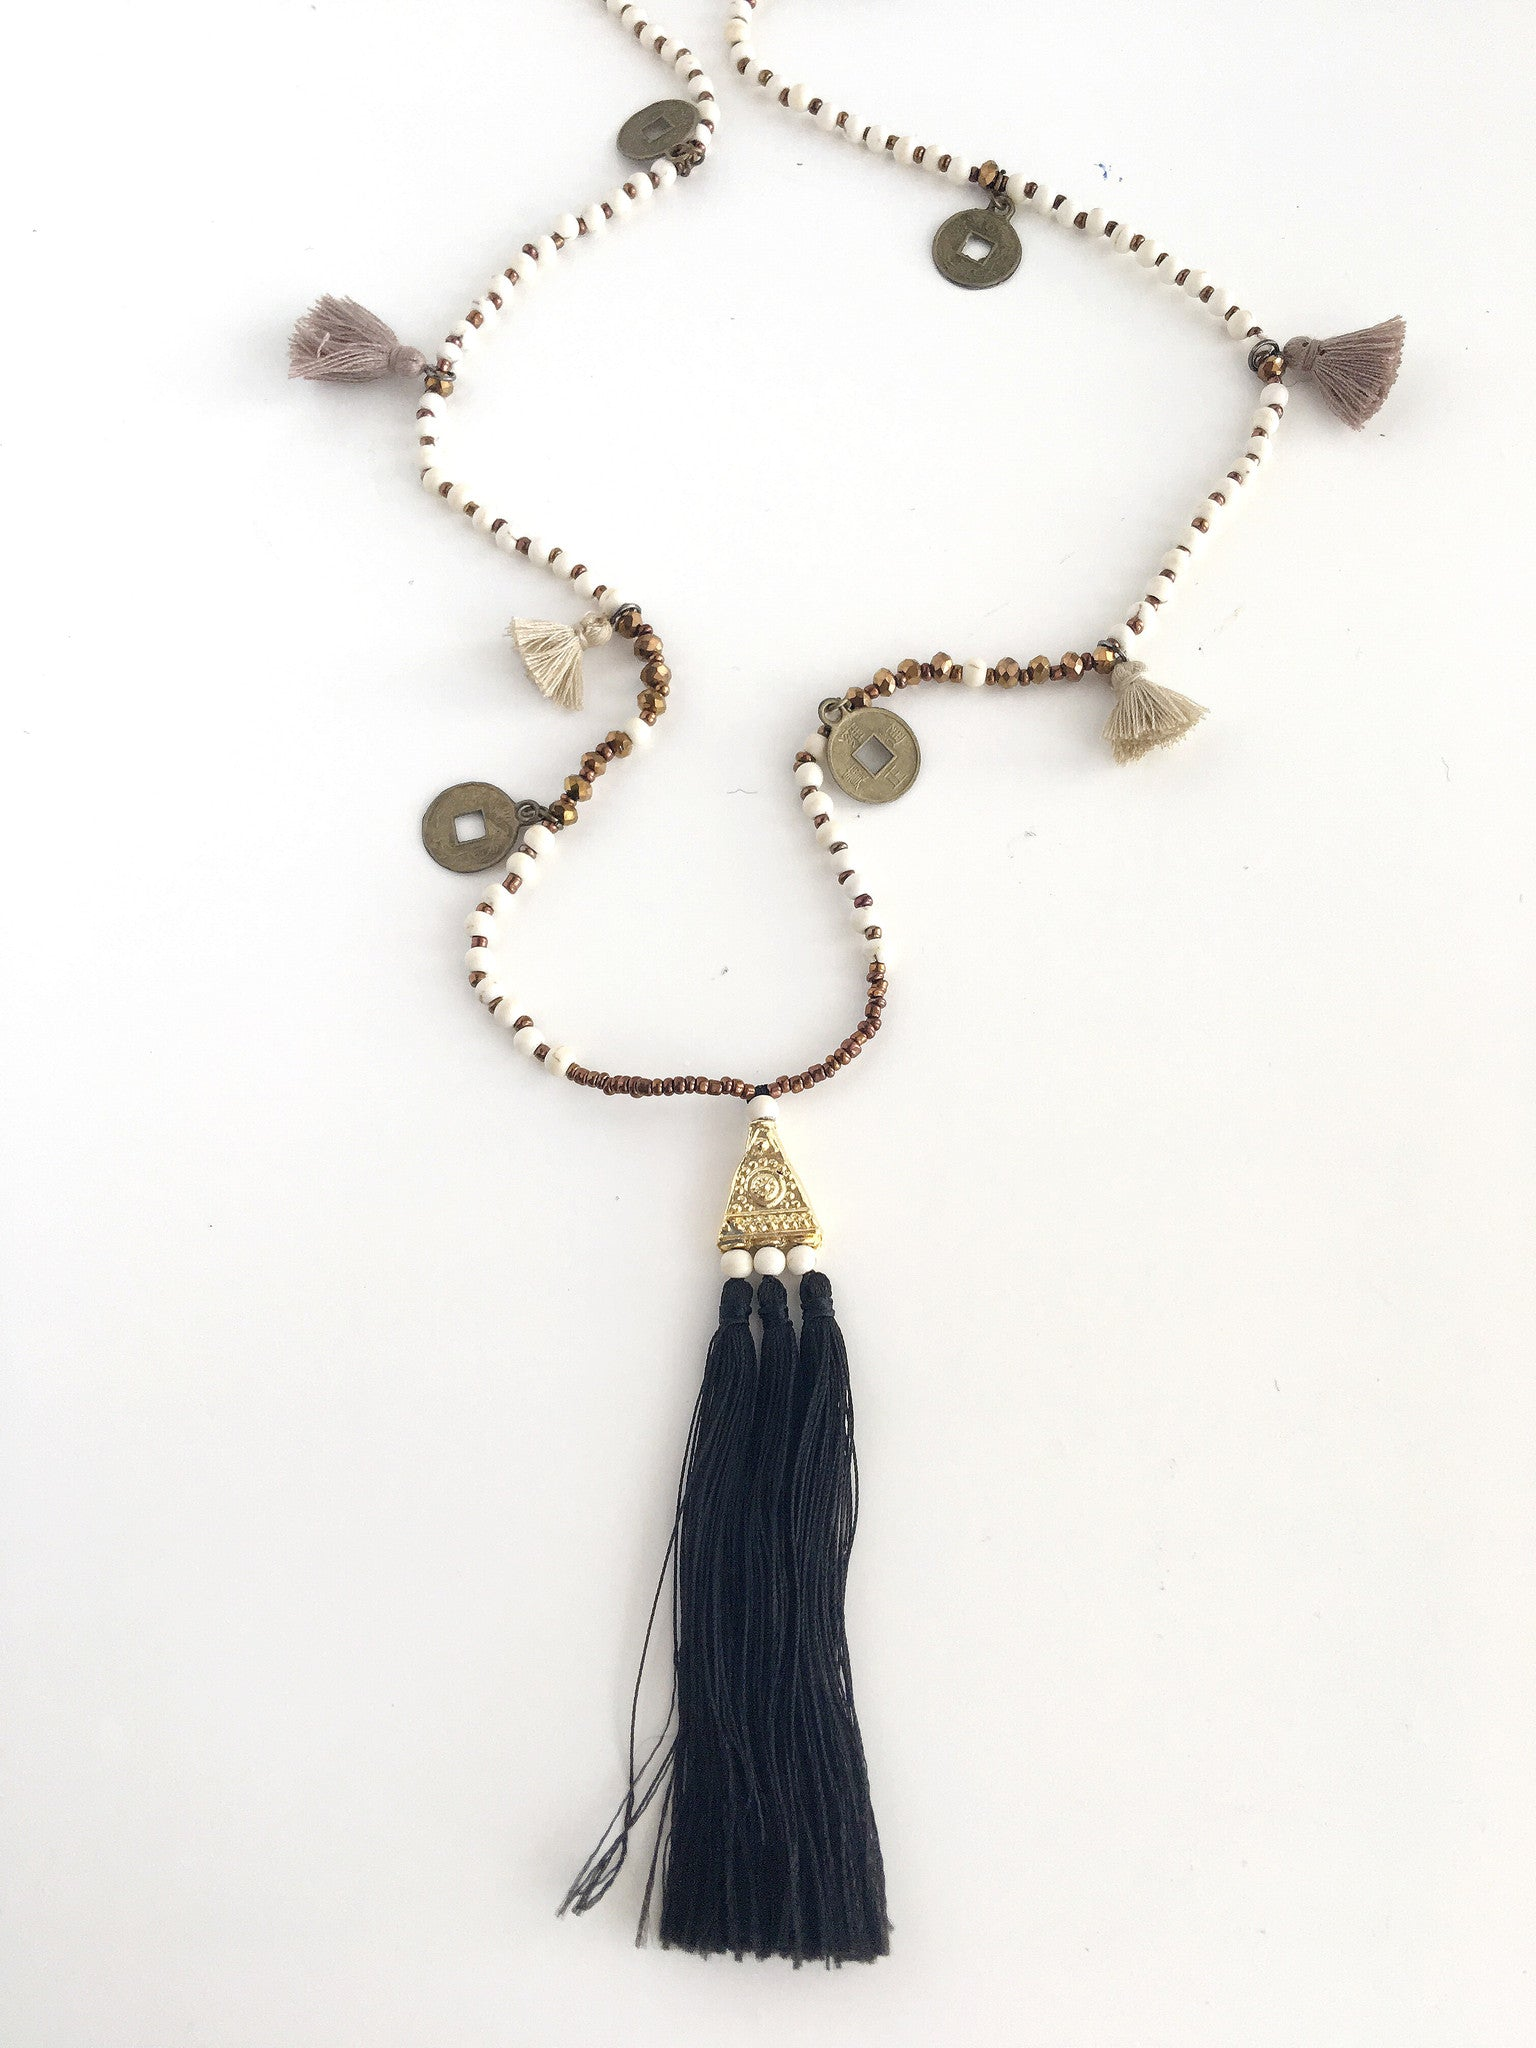 Nomads Necklace